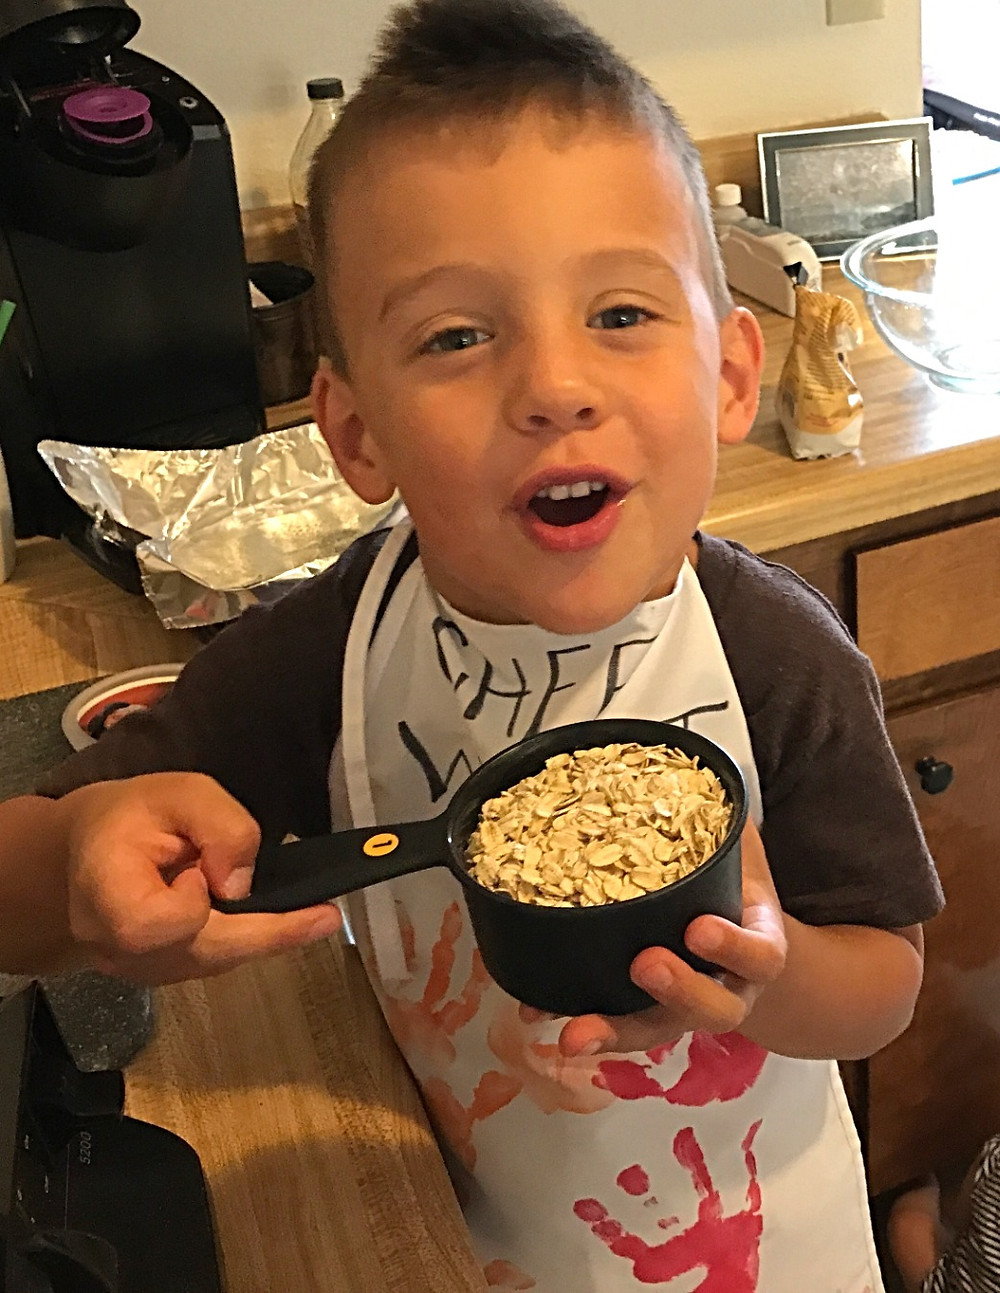 Child holding oats in measuring cup